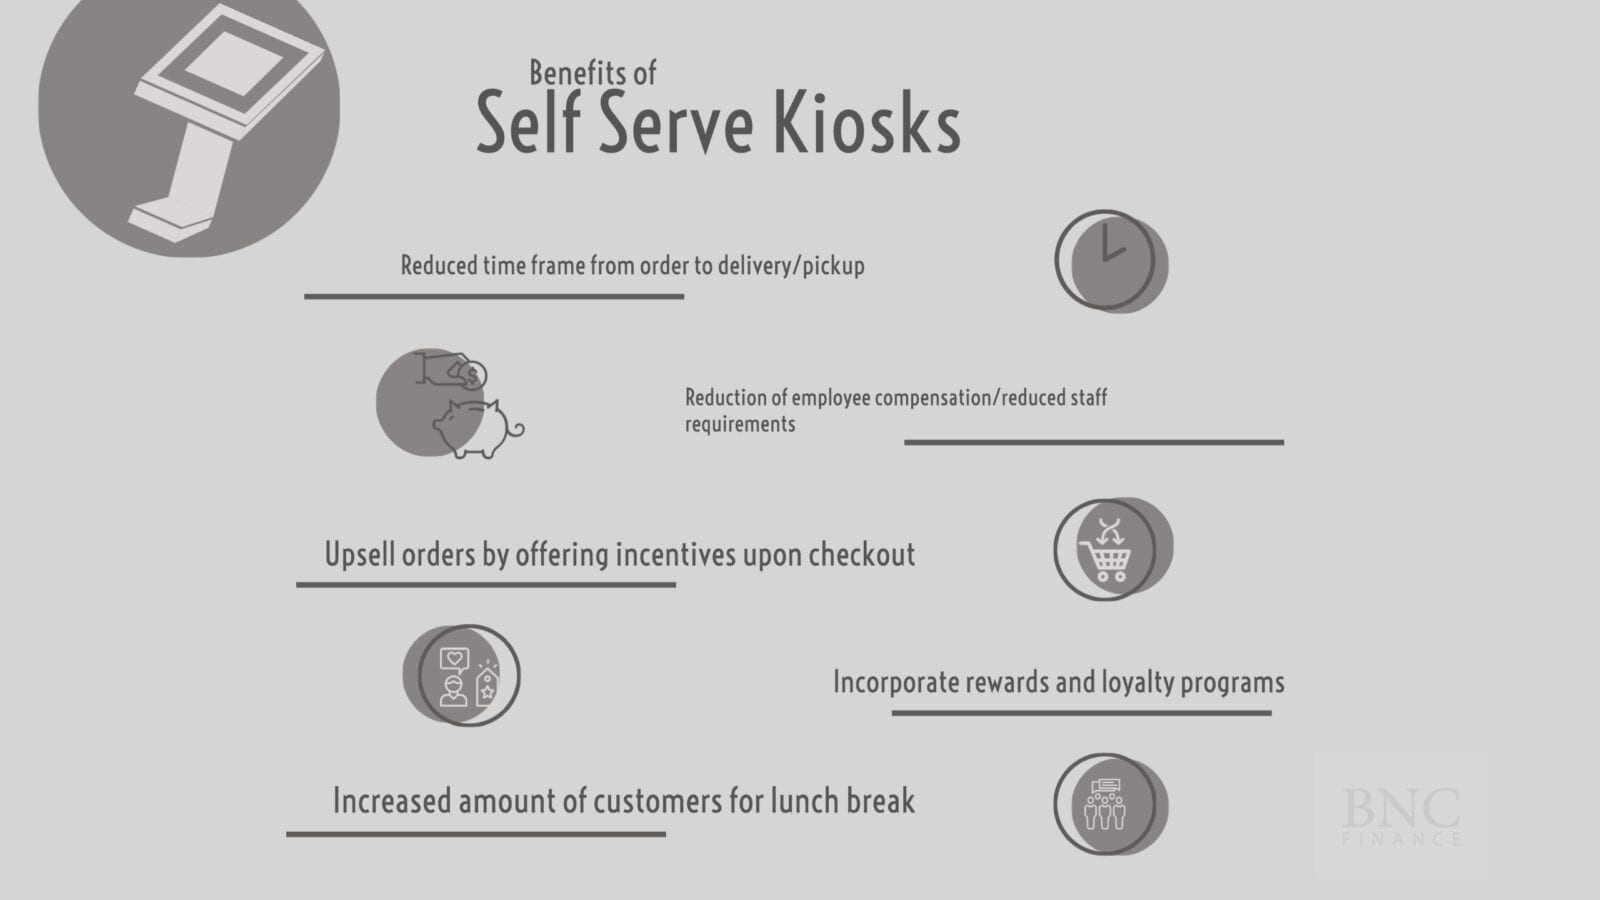 Infographic Benefits of Self Serve Kiosks for restaurants